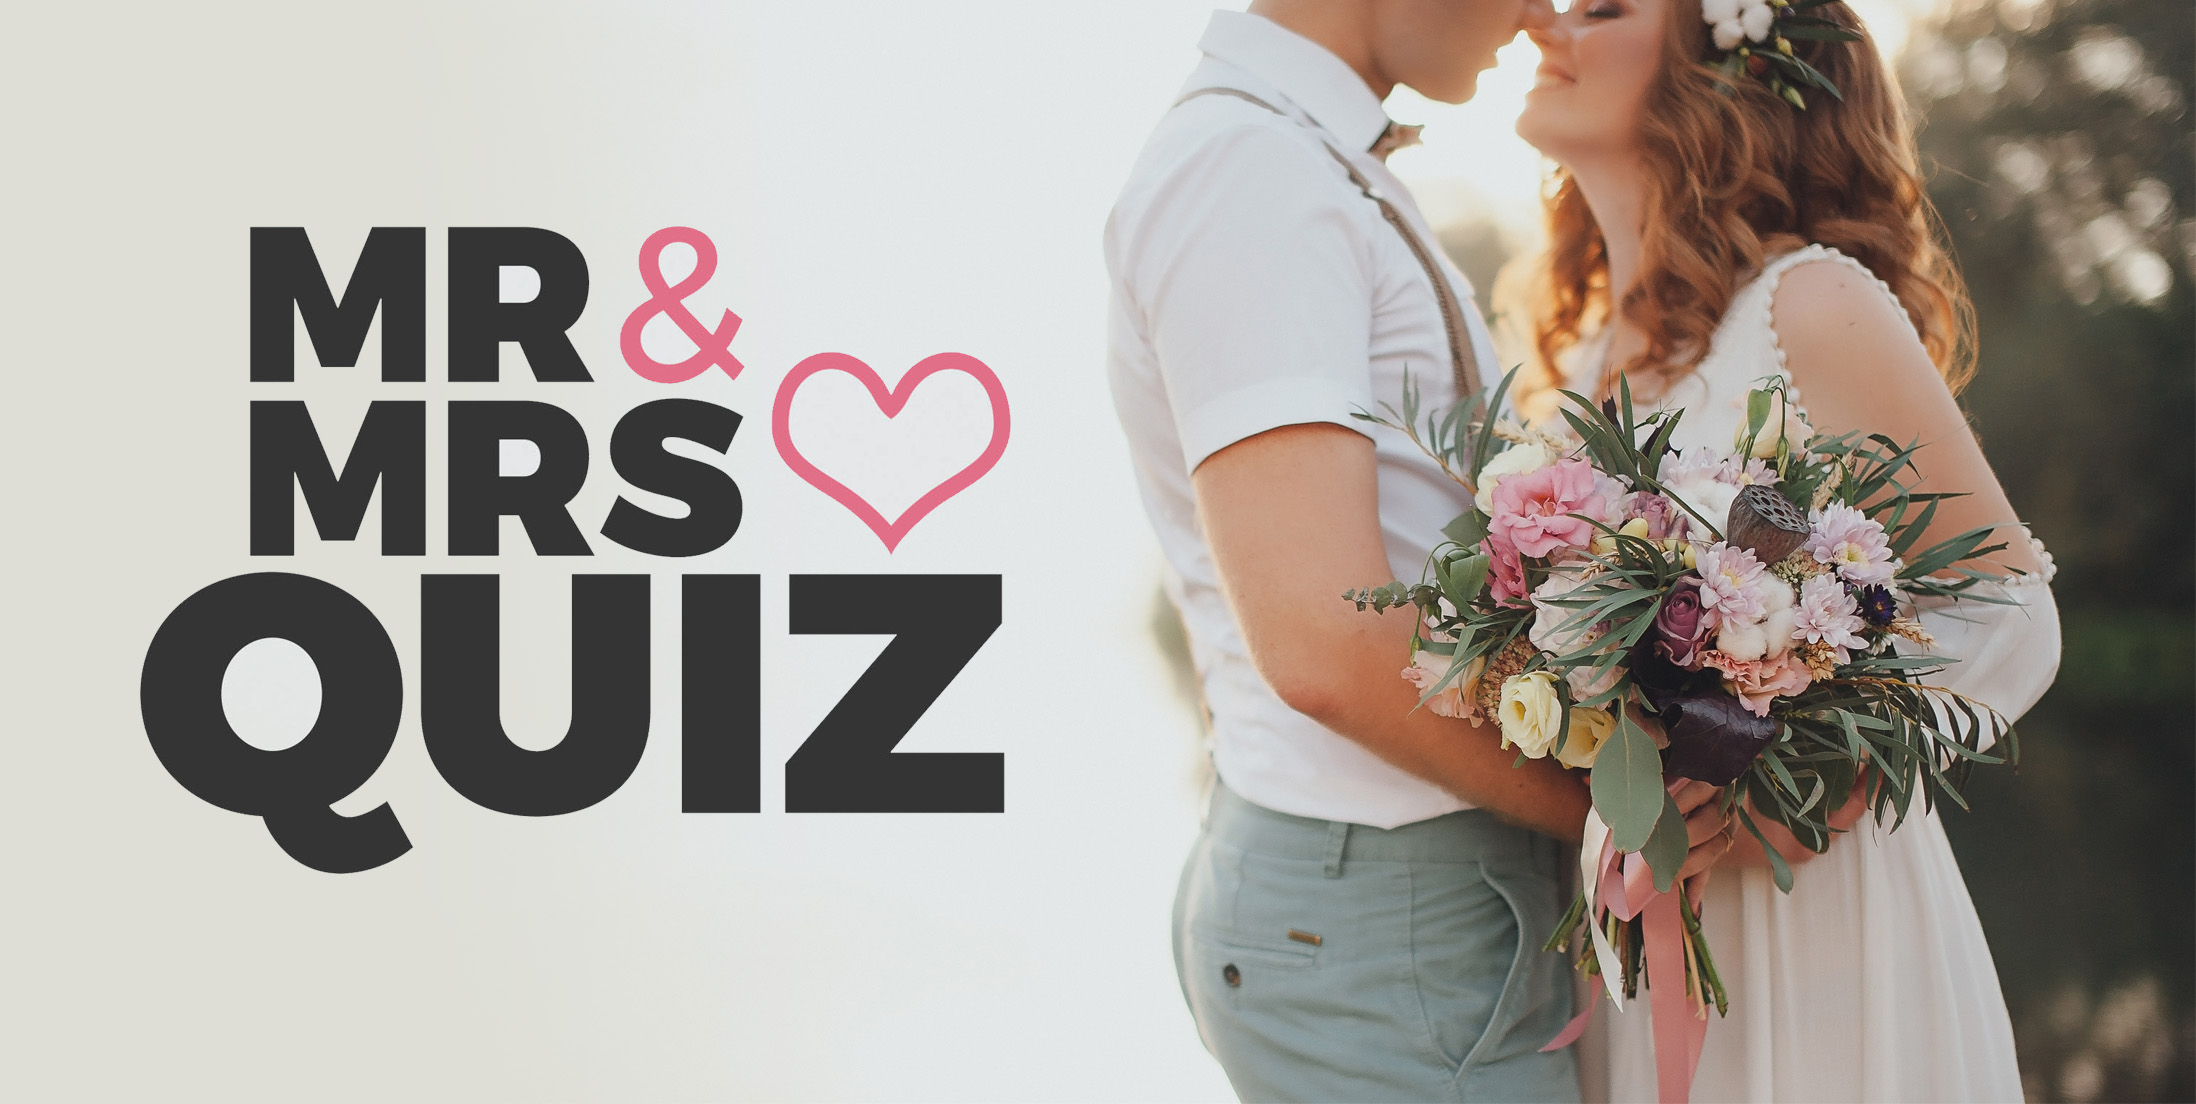 Free Mr & Mrs Quiz